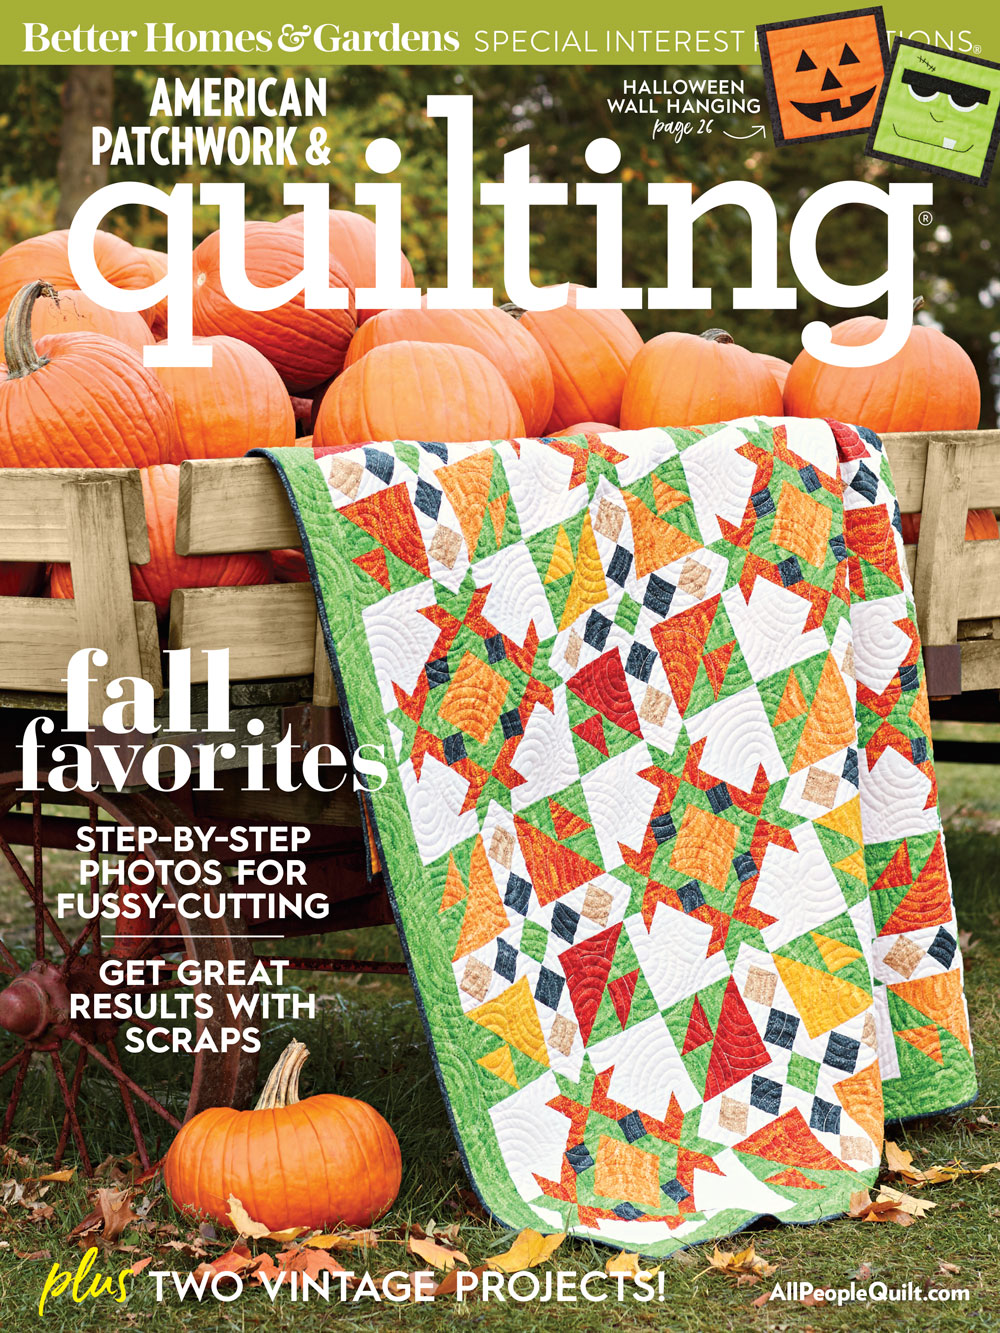 American Patchwork & Quilting October 2018